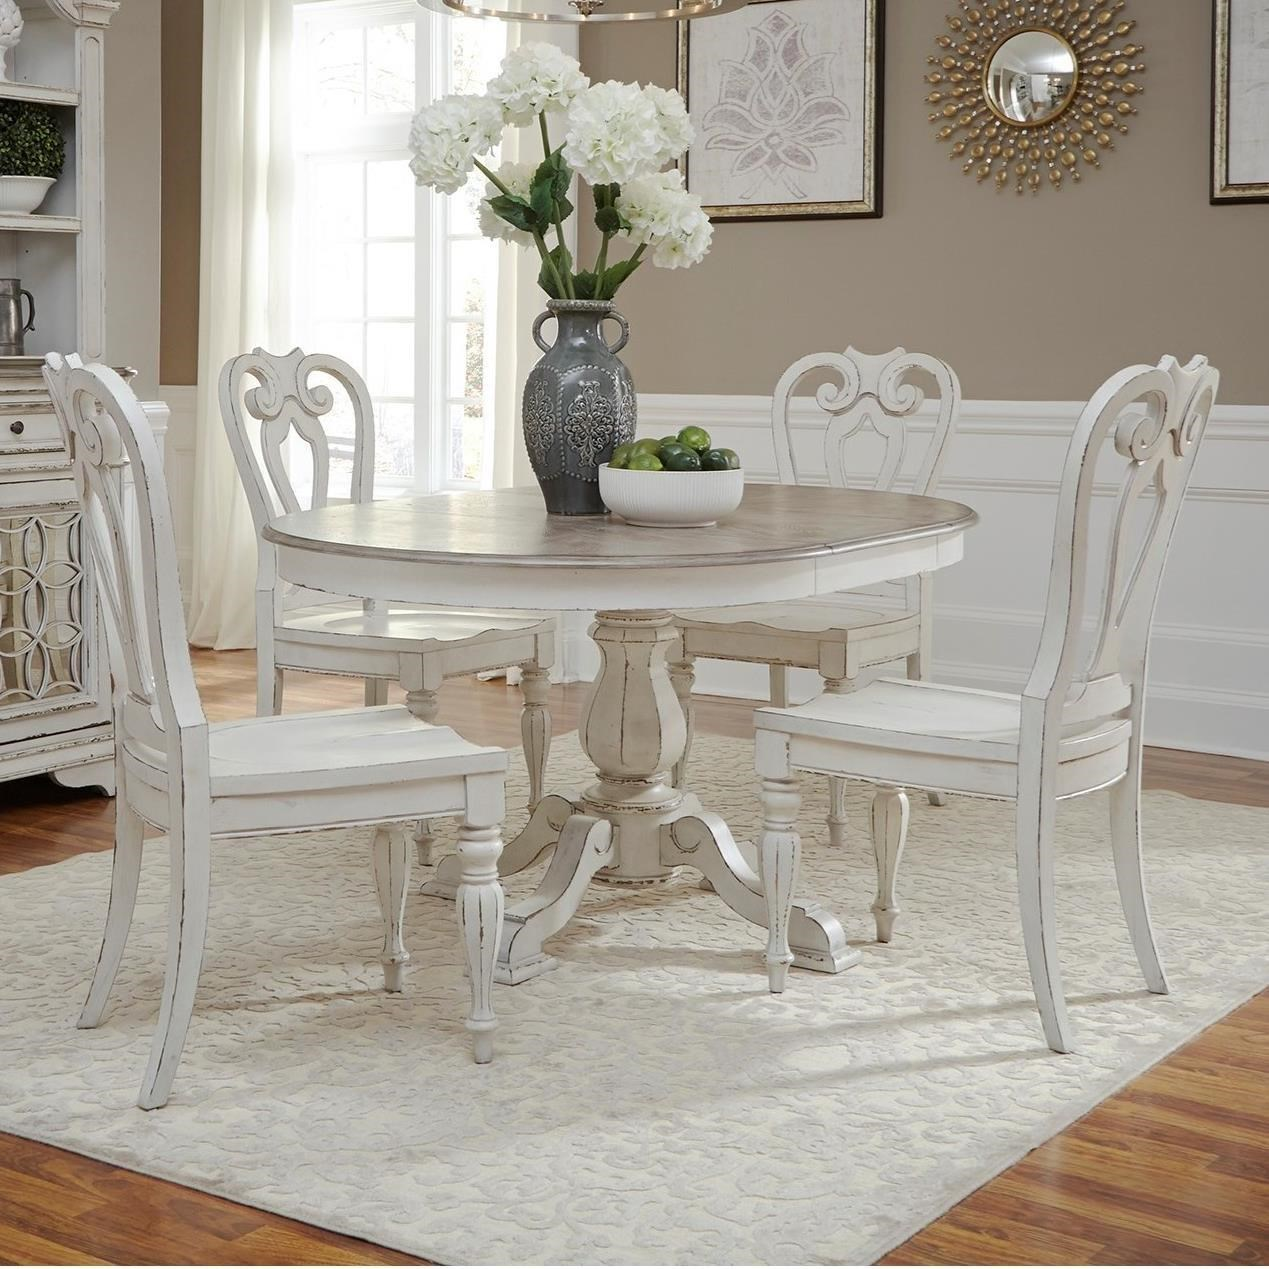 Great Oval Dining Table U0026 6 Chair Set